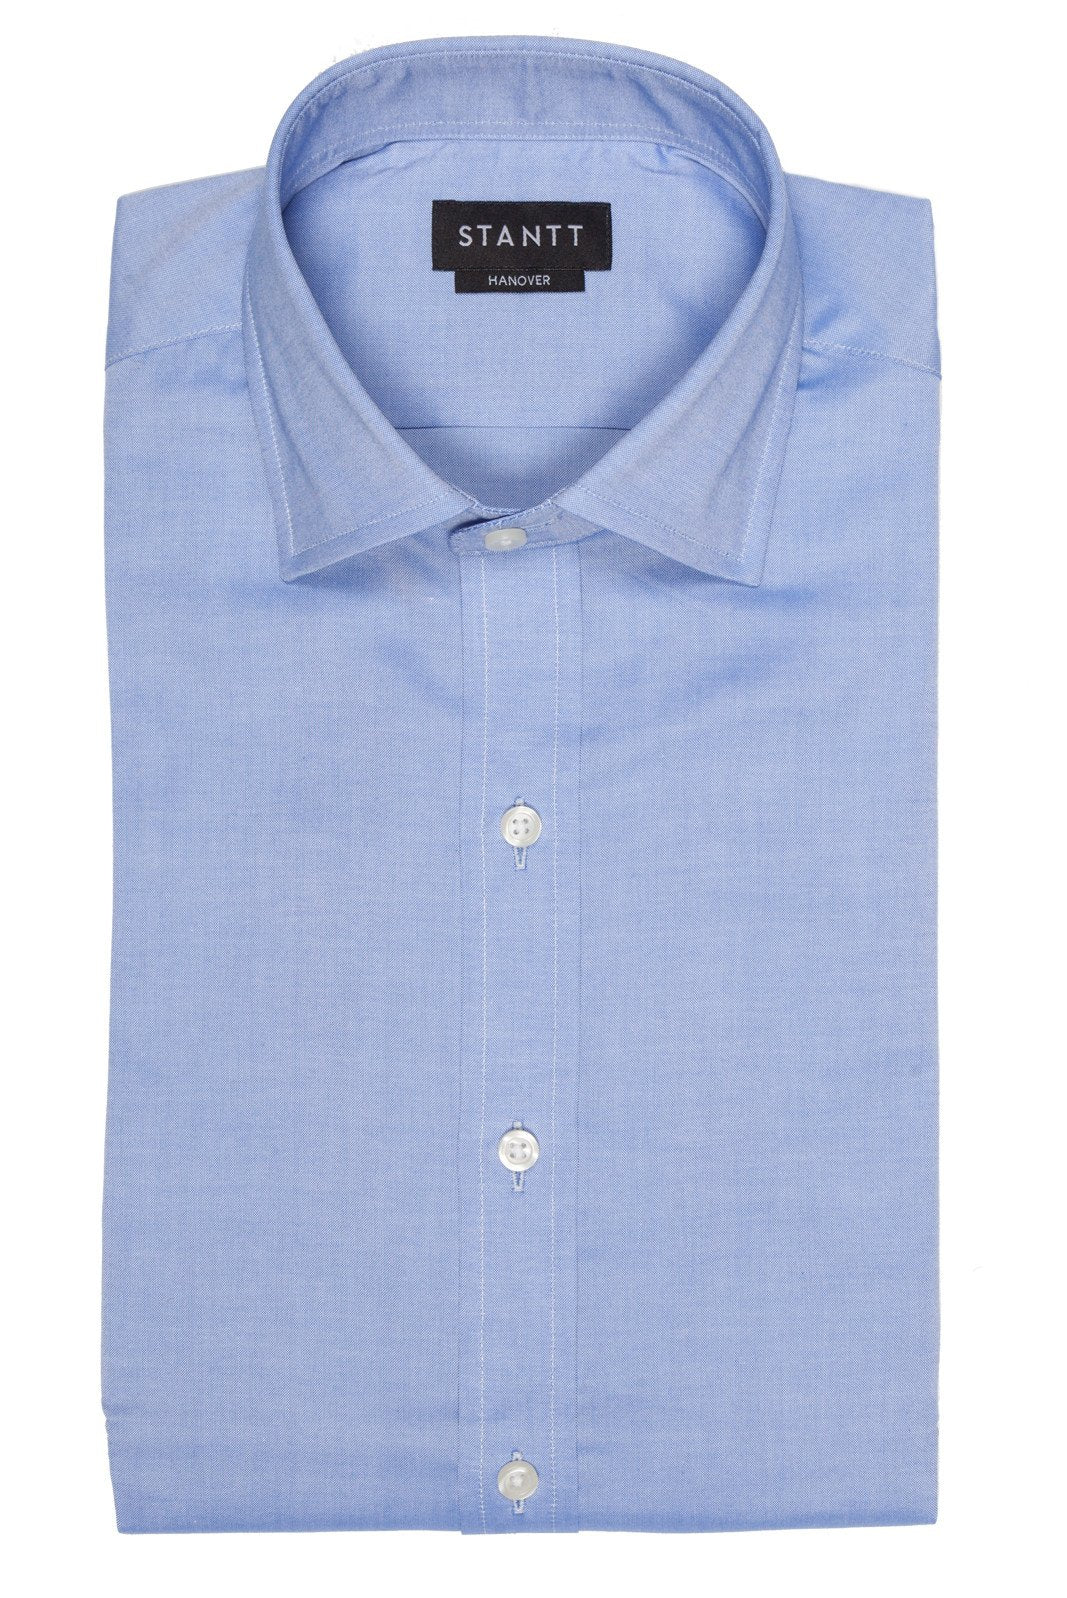 Blue Pinpoint Oxford: Button-Down Collar, Barrel Cuff